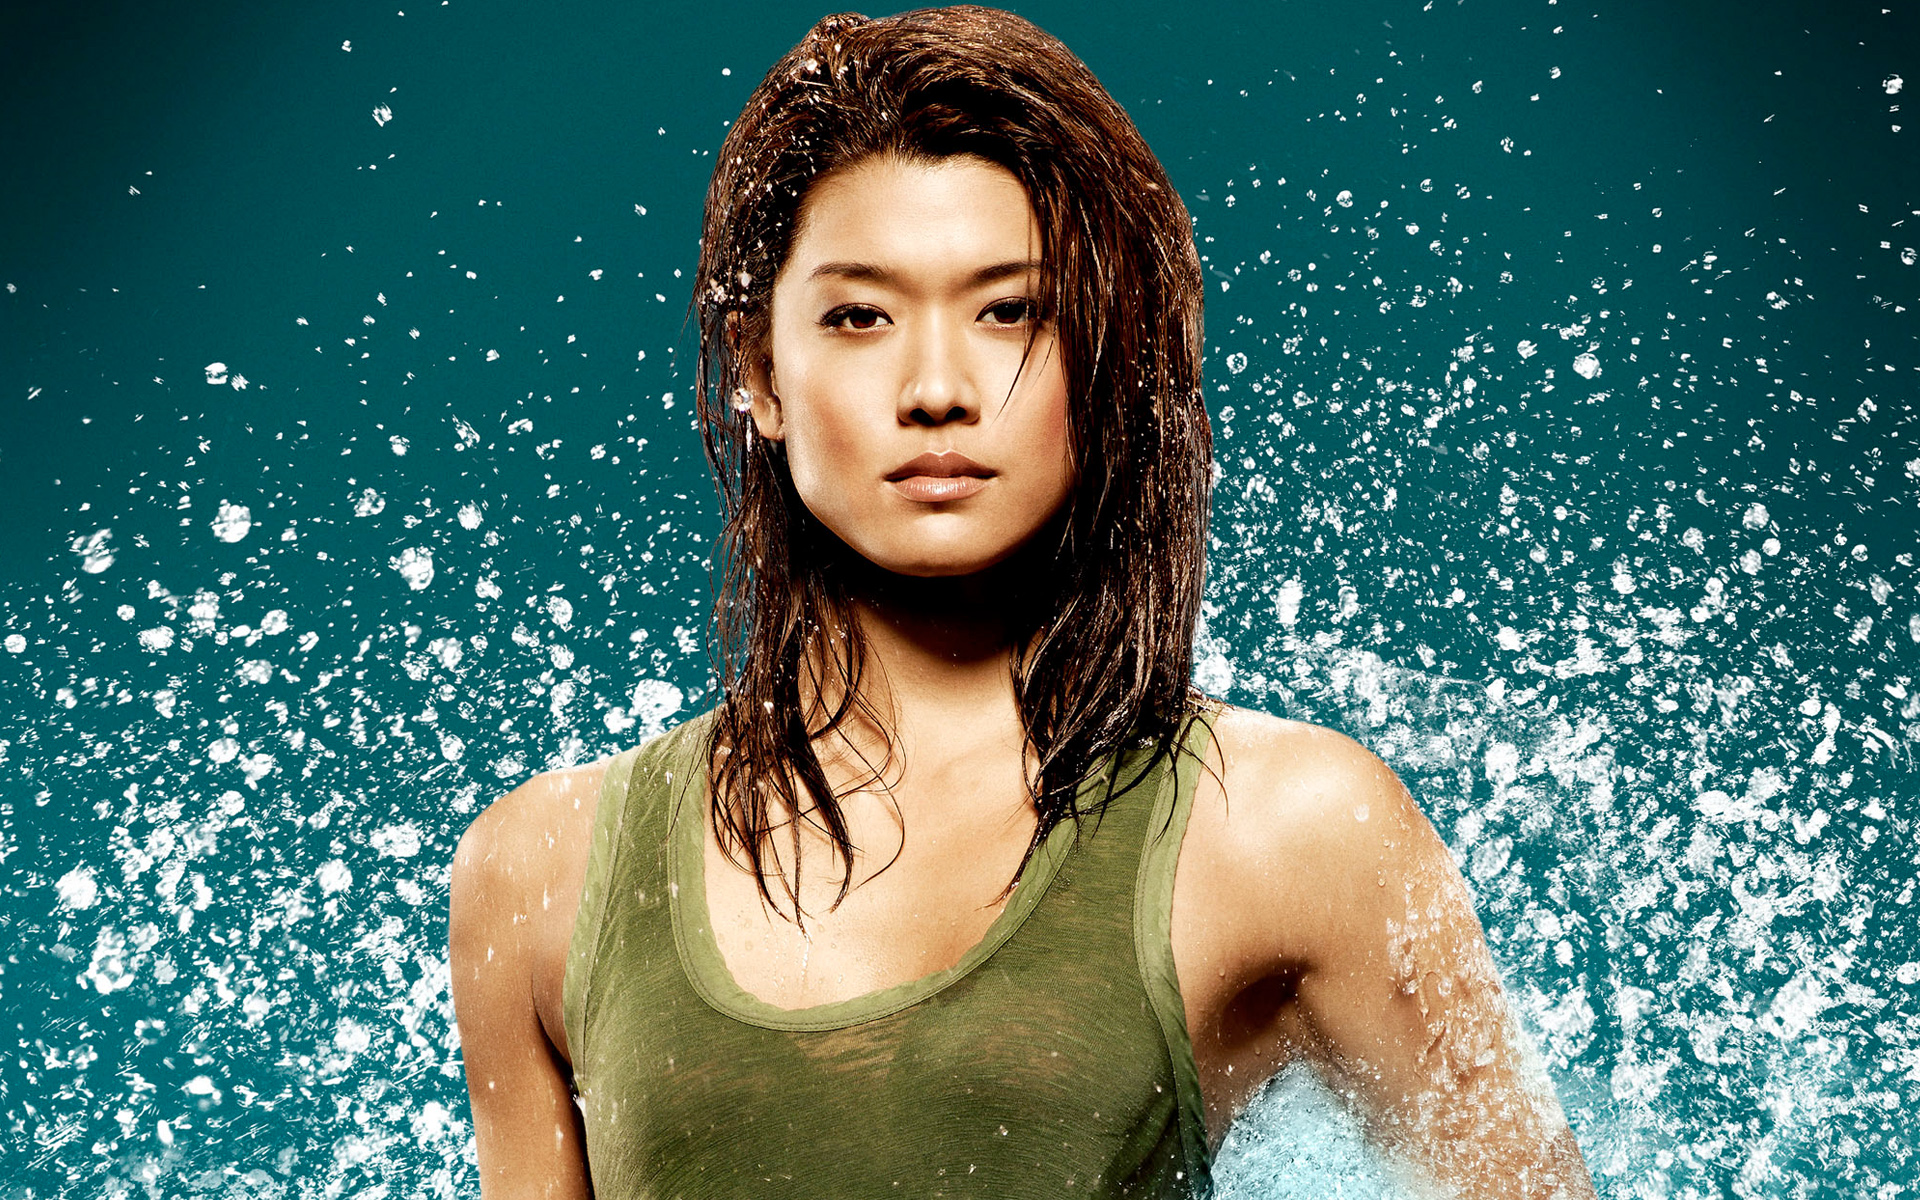 click to free download the wallpaper--Free TV & Movies Post - Grace Park Post in Pixel of 1920x1200, Girl in Cool Eyesight, Great in Look 1920X1200 free wallpaper download